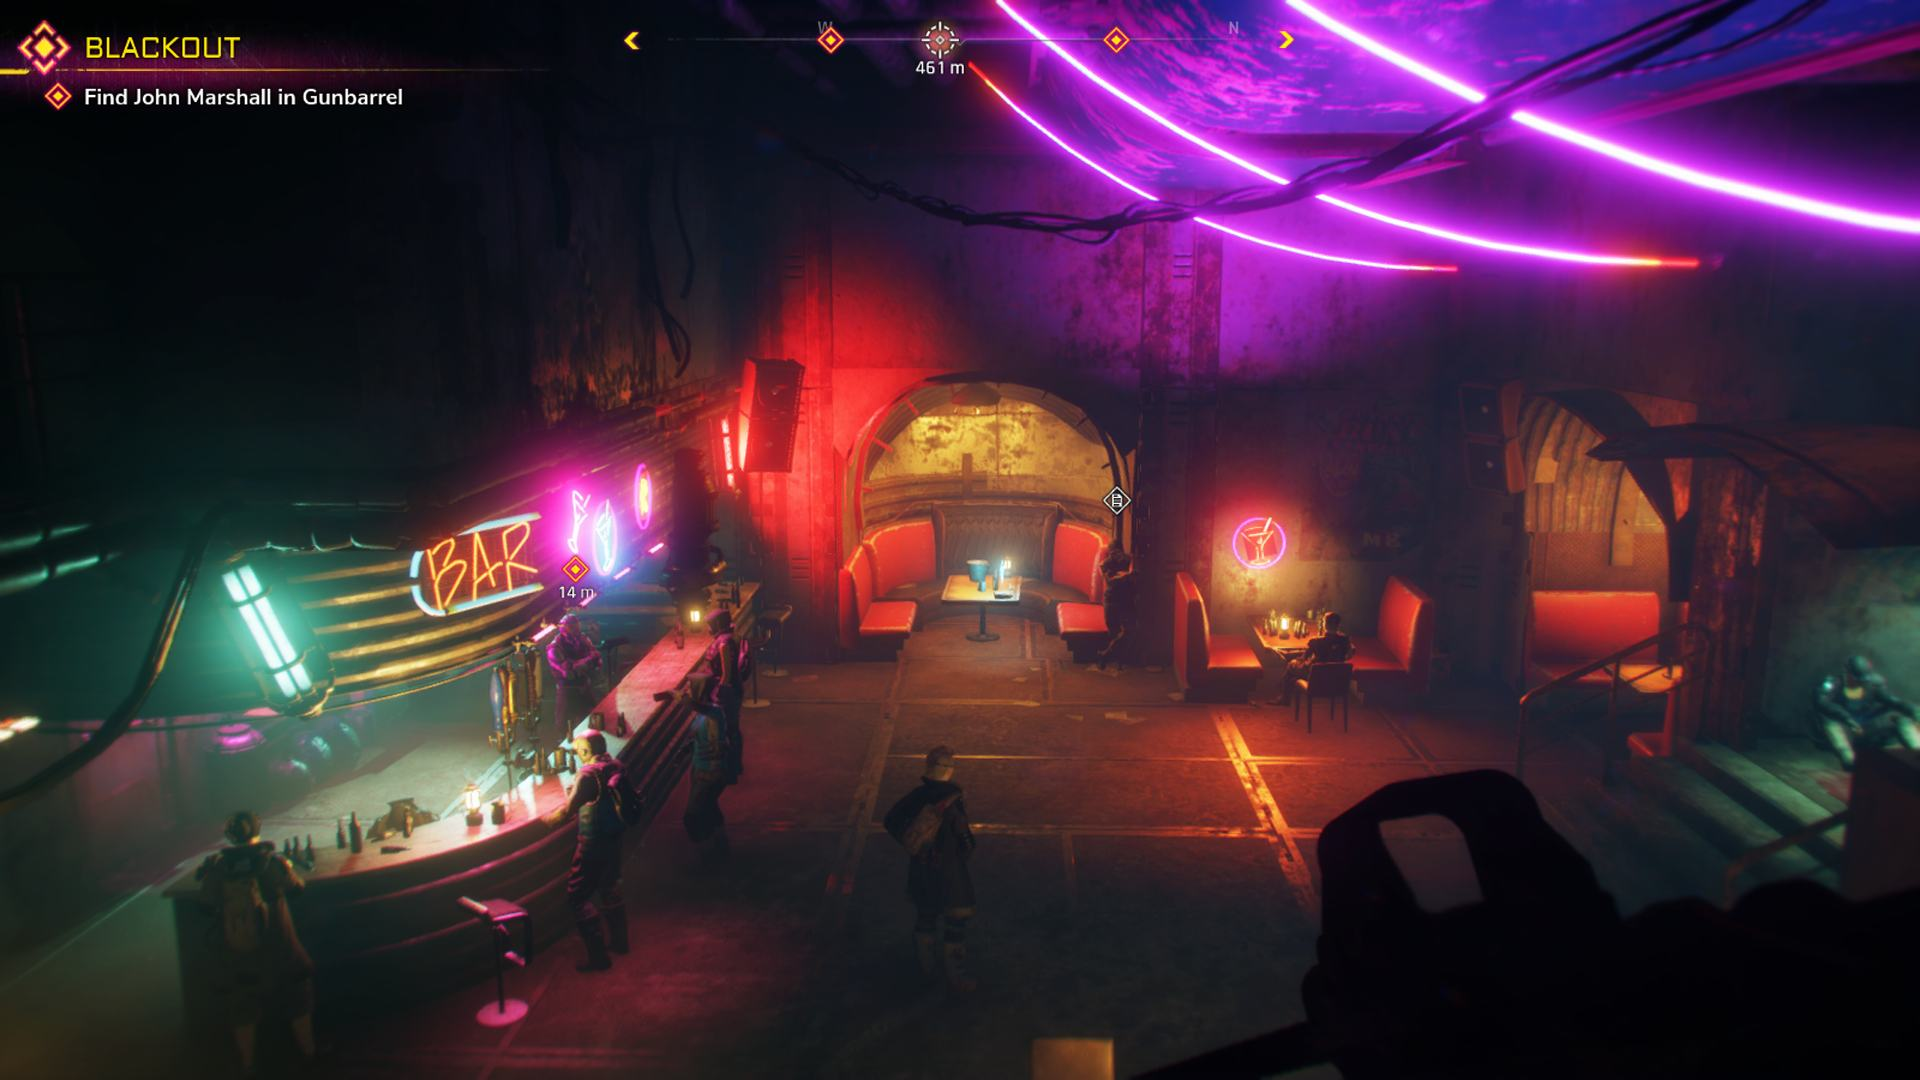 Rage 2 Gunbarrel Neon Bar